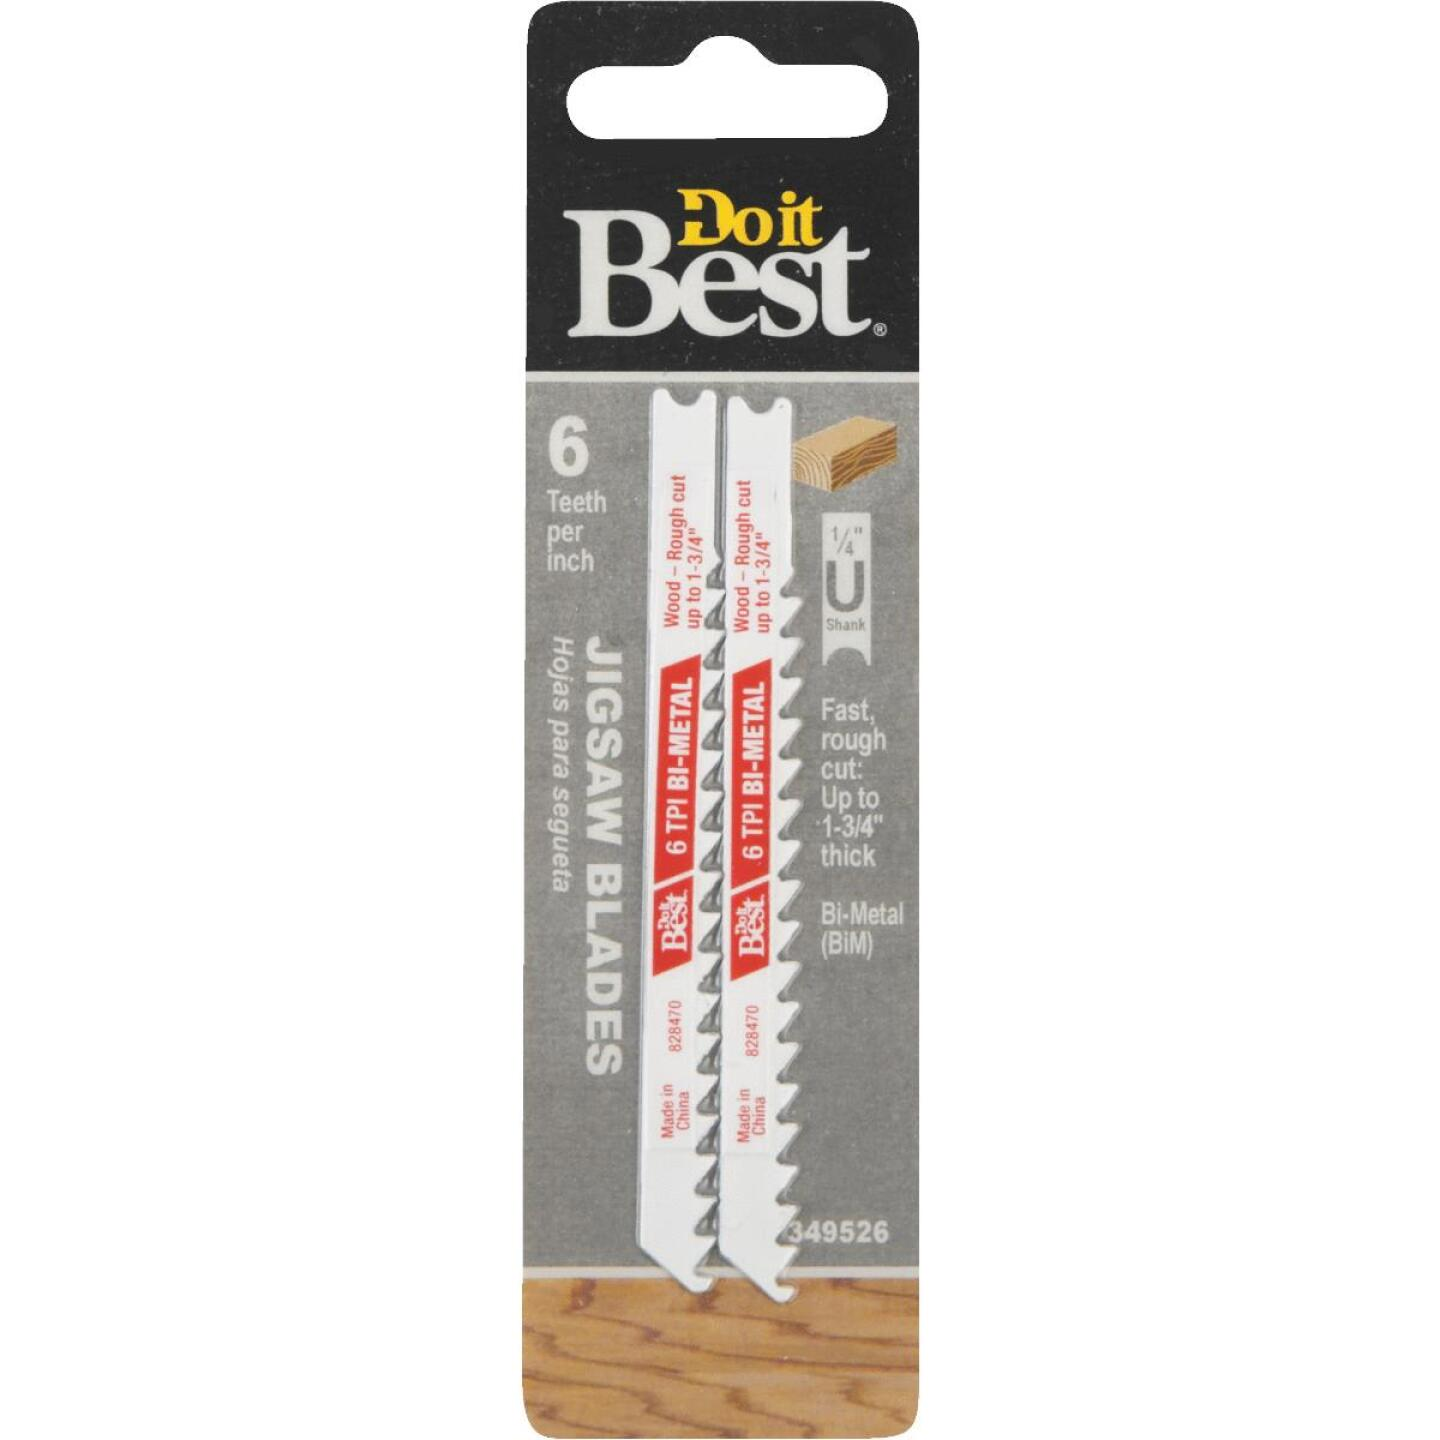 Do it Best U-Shank 3-5/8 In. x 6 TPI Bi-Metal Jig Saw Blade, Wood 1-3/4 In. Thick (2-Pack) Image 1